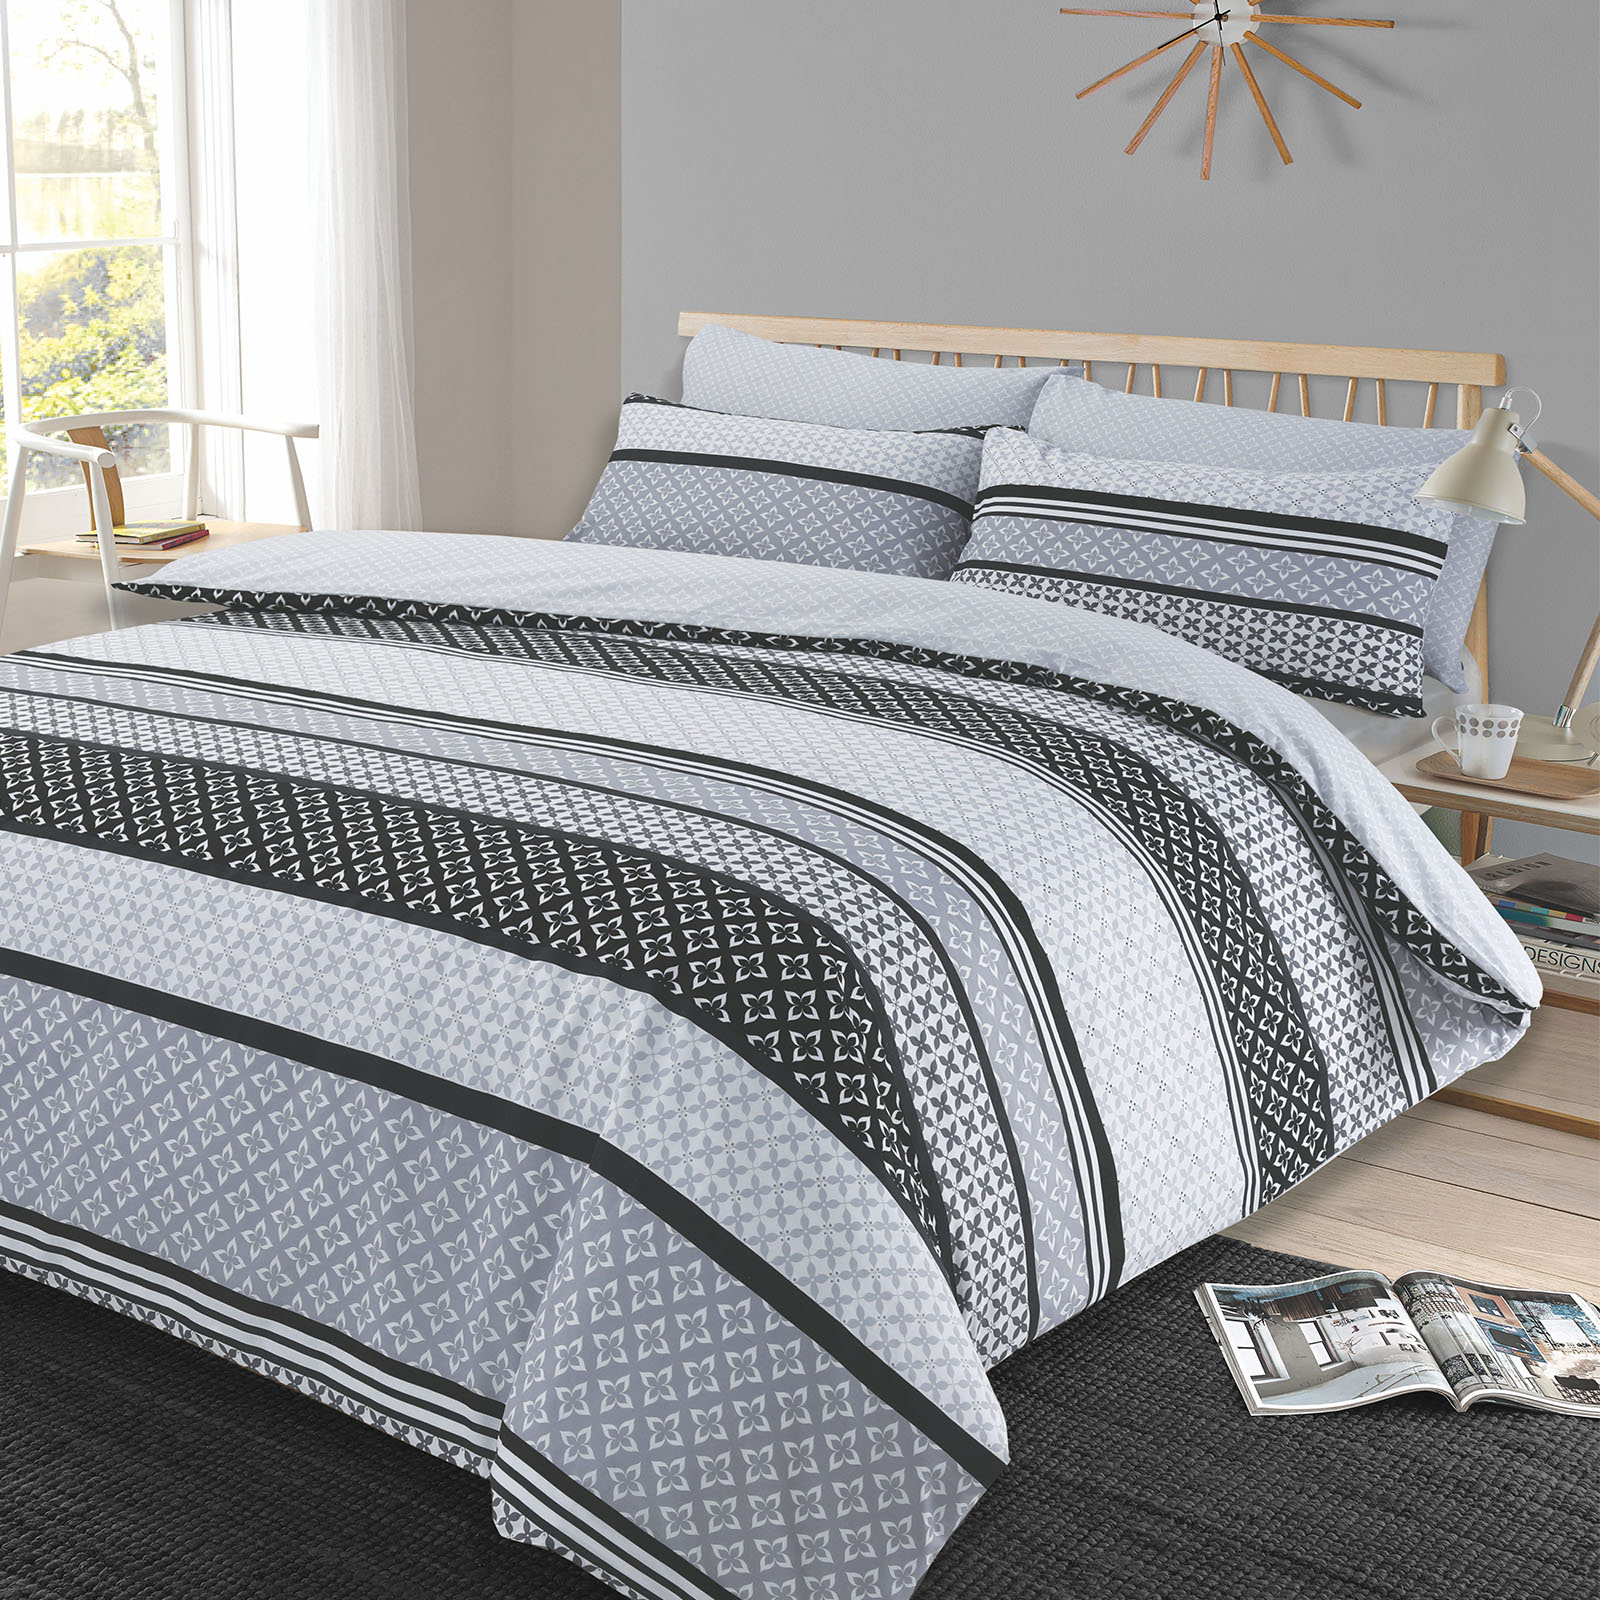 Charcoal Grey Bedding Duvet Cover With Pillowcase Reversible Bedding Set Lola